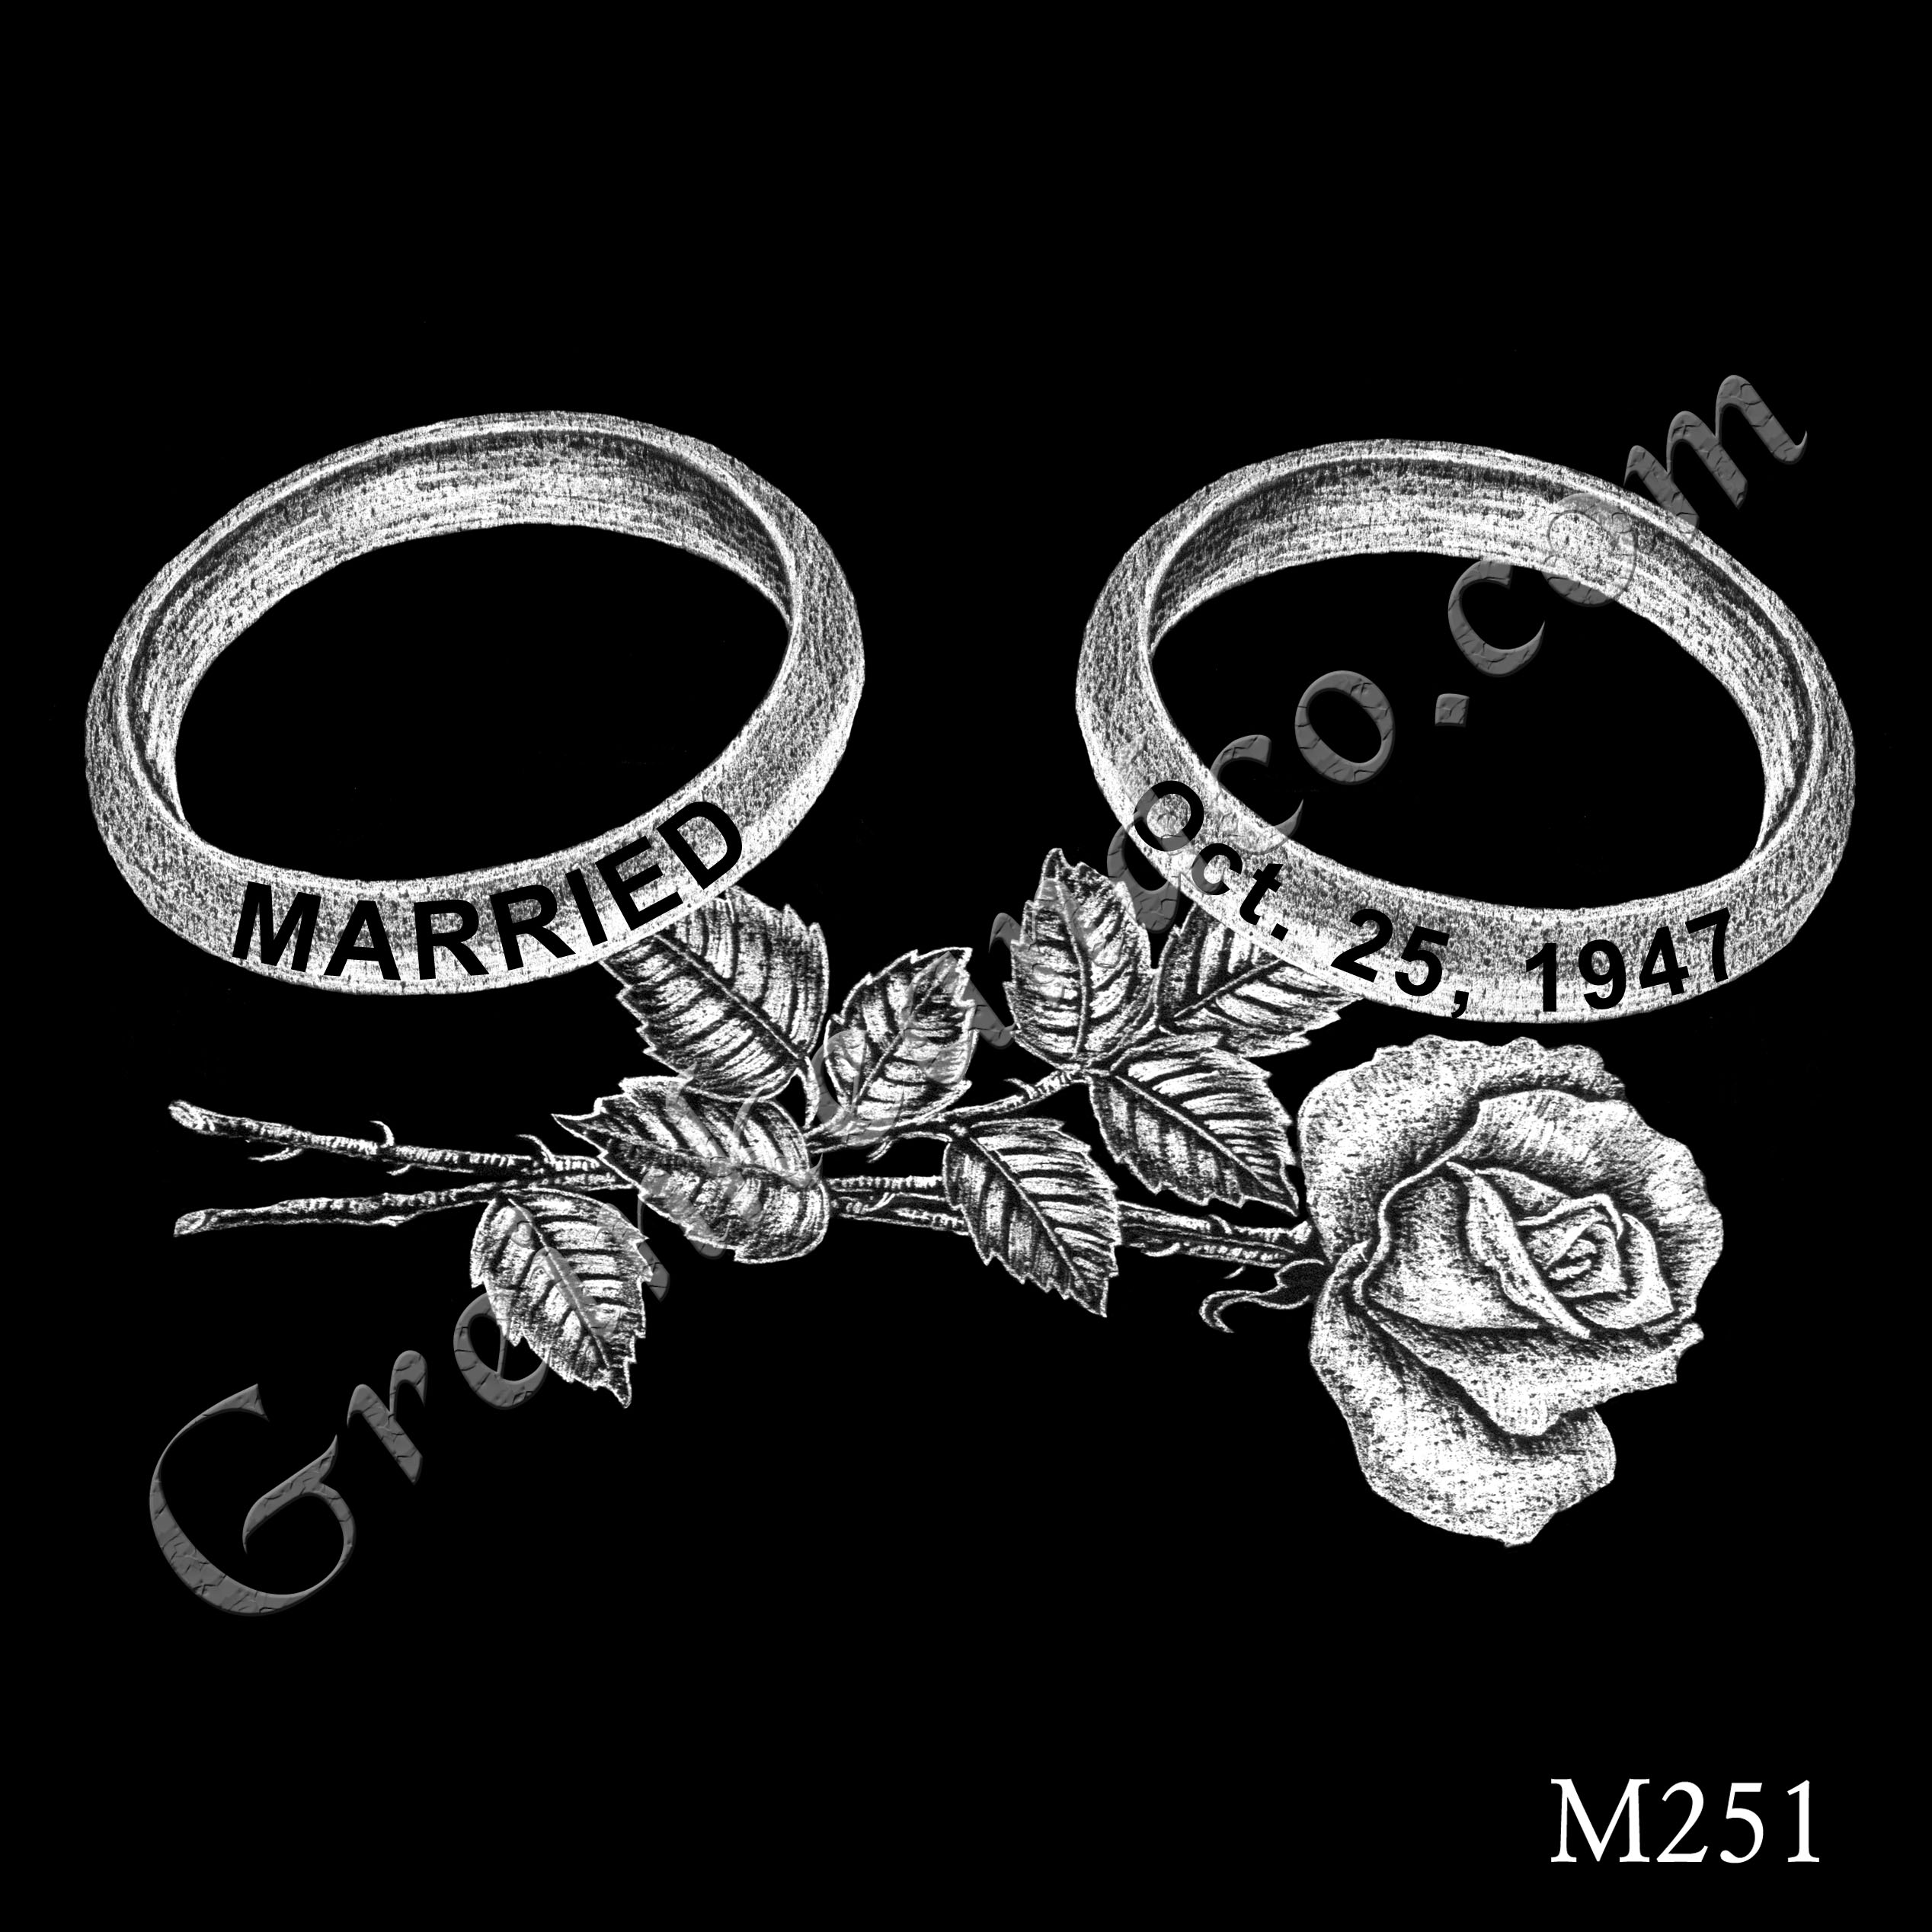 two wedding bands with dates printed on them, a single long-stem rose lays beneath them